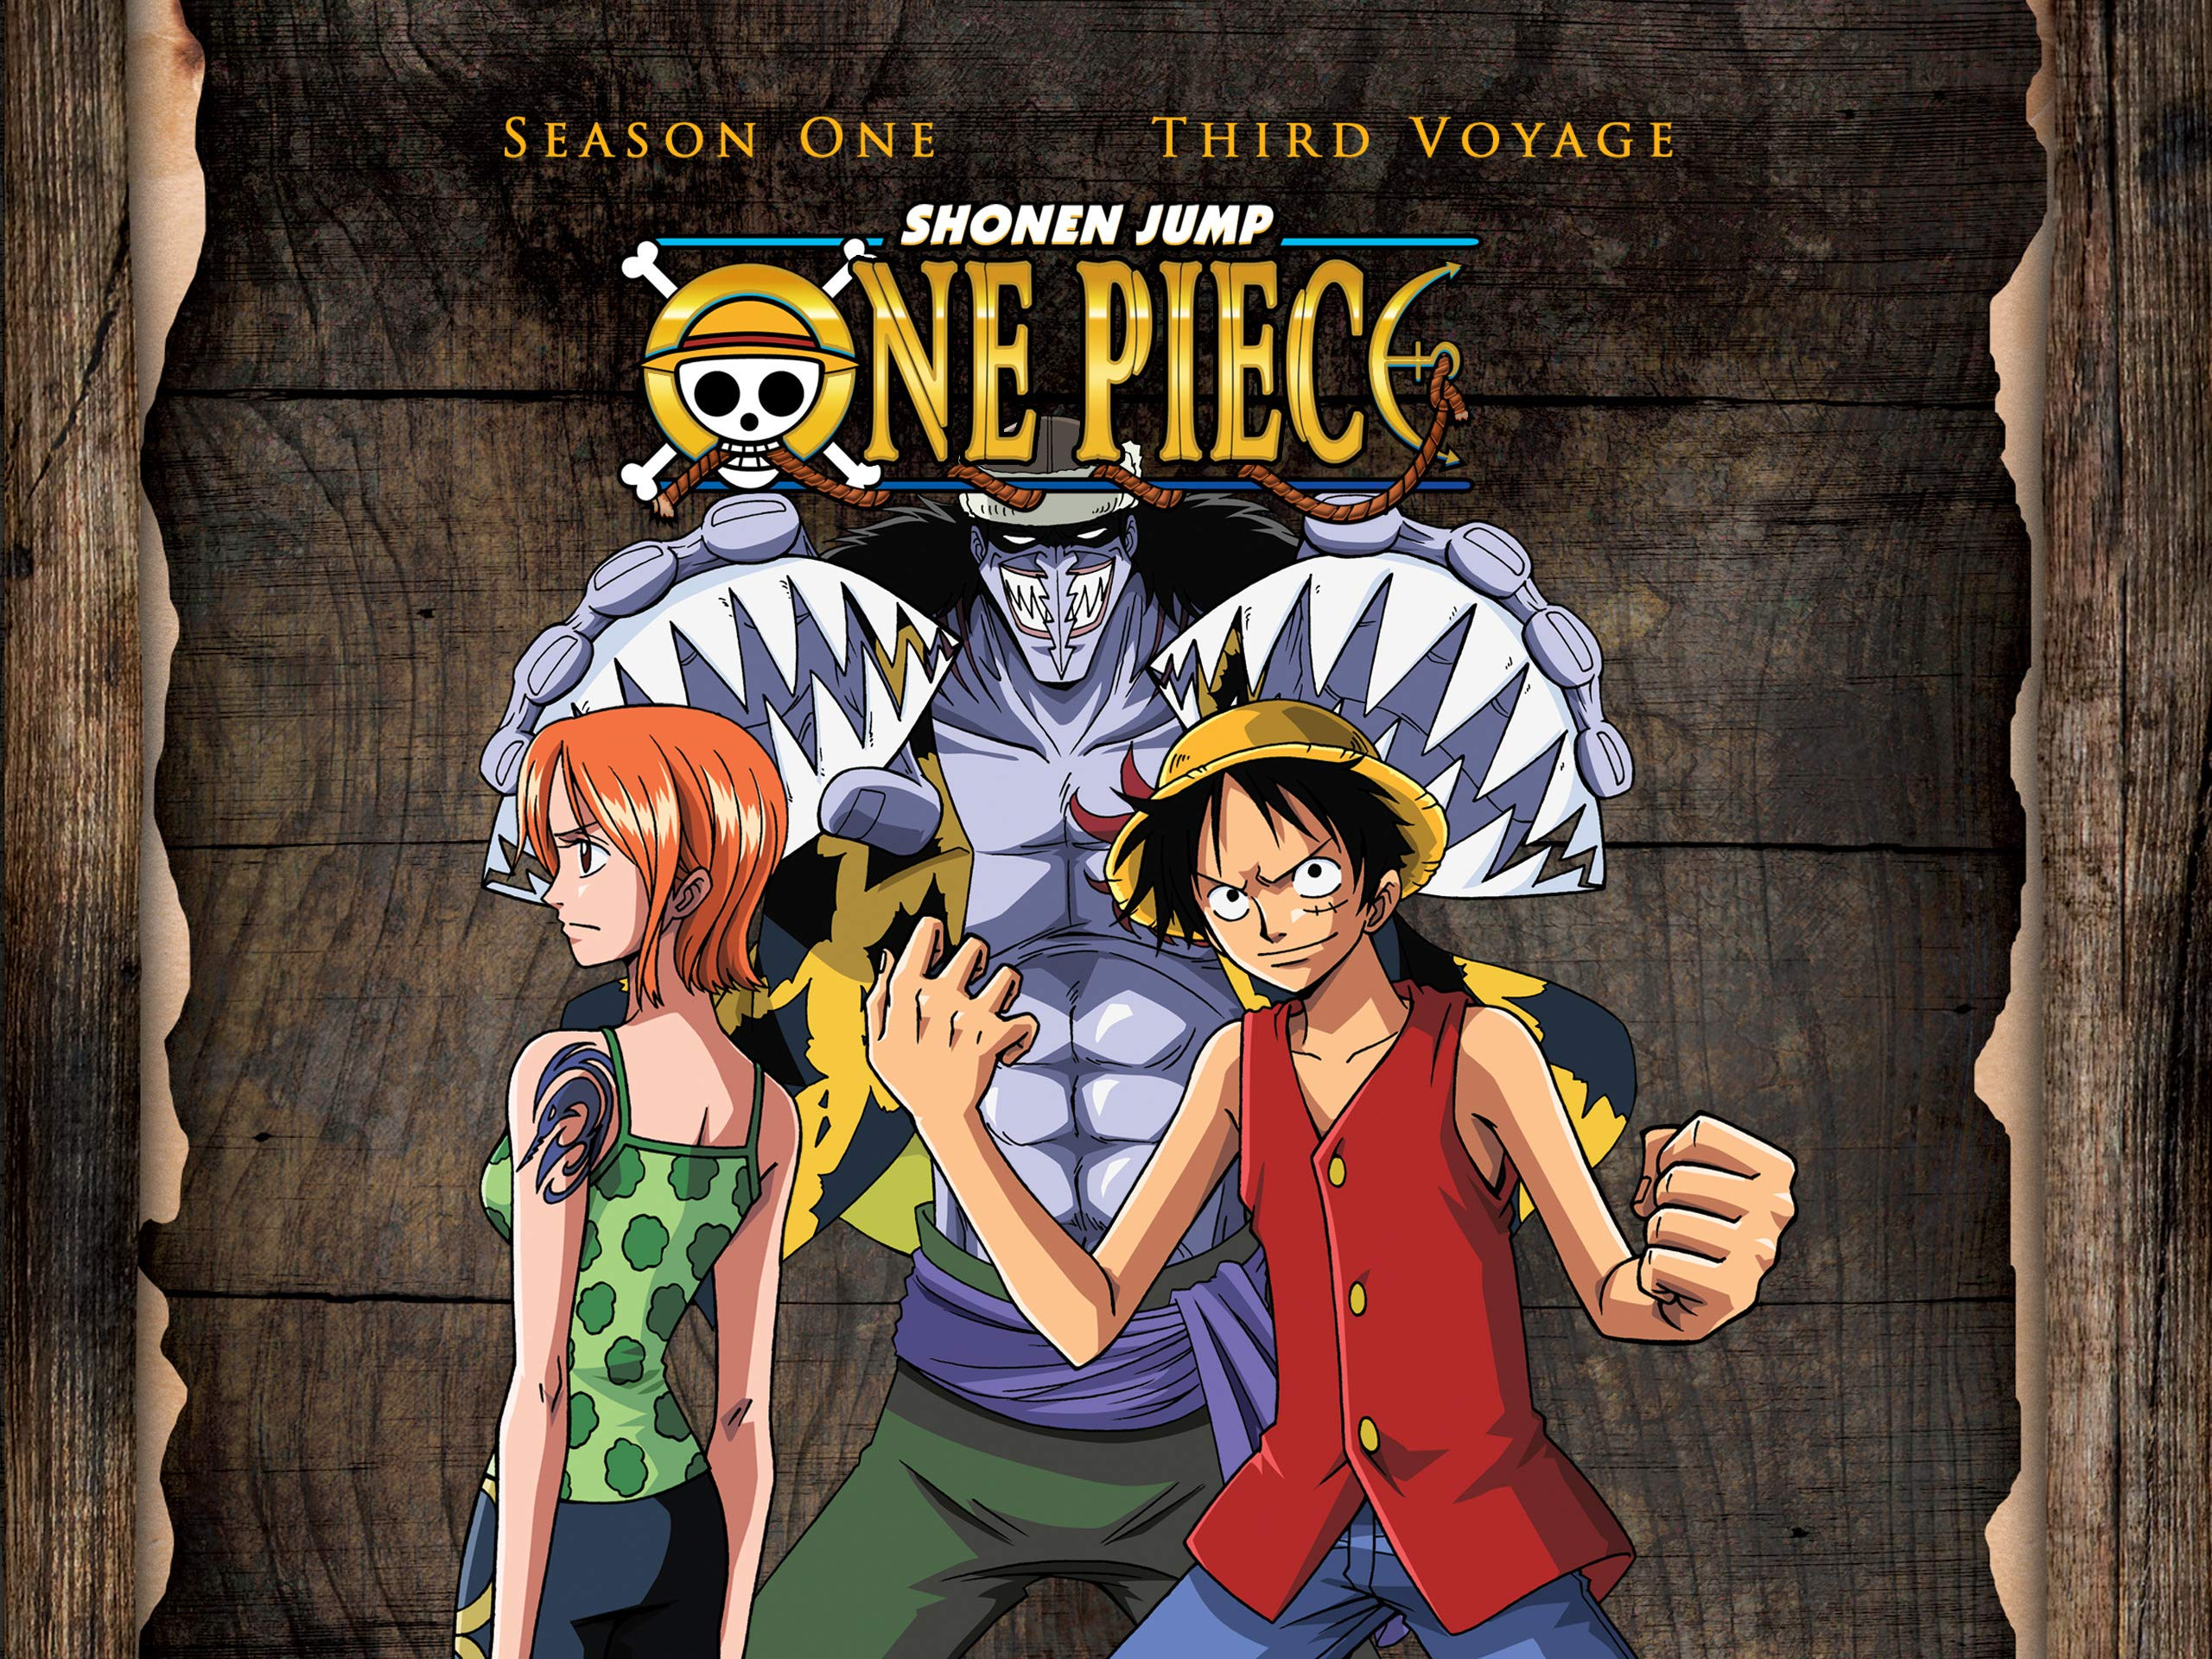 Watch One Piece Season 1 Third Voyage Original Japanese Version Prime Video